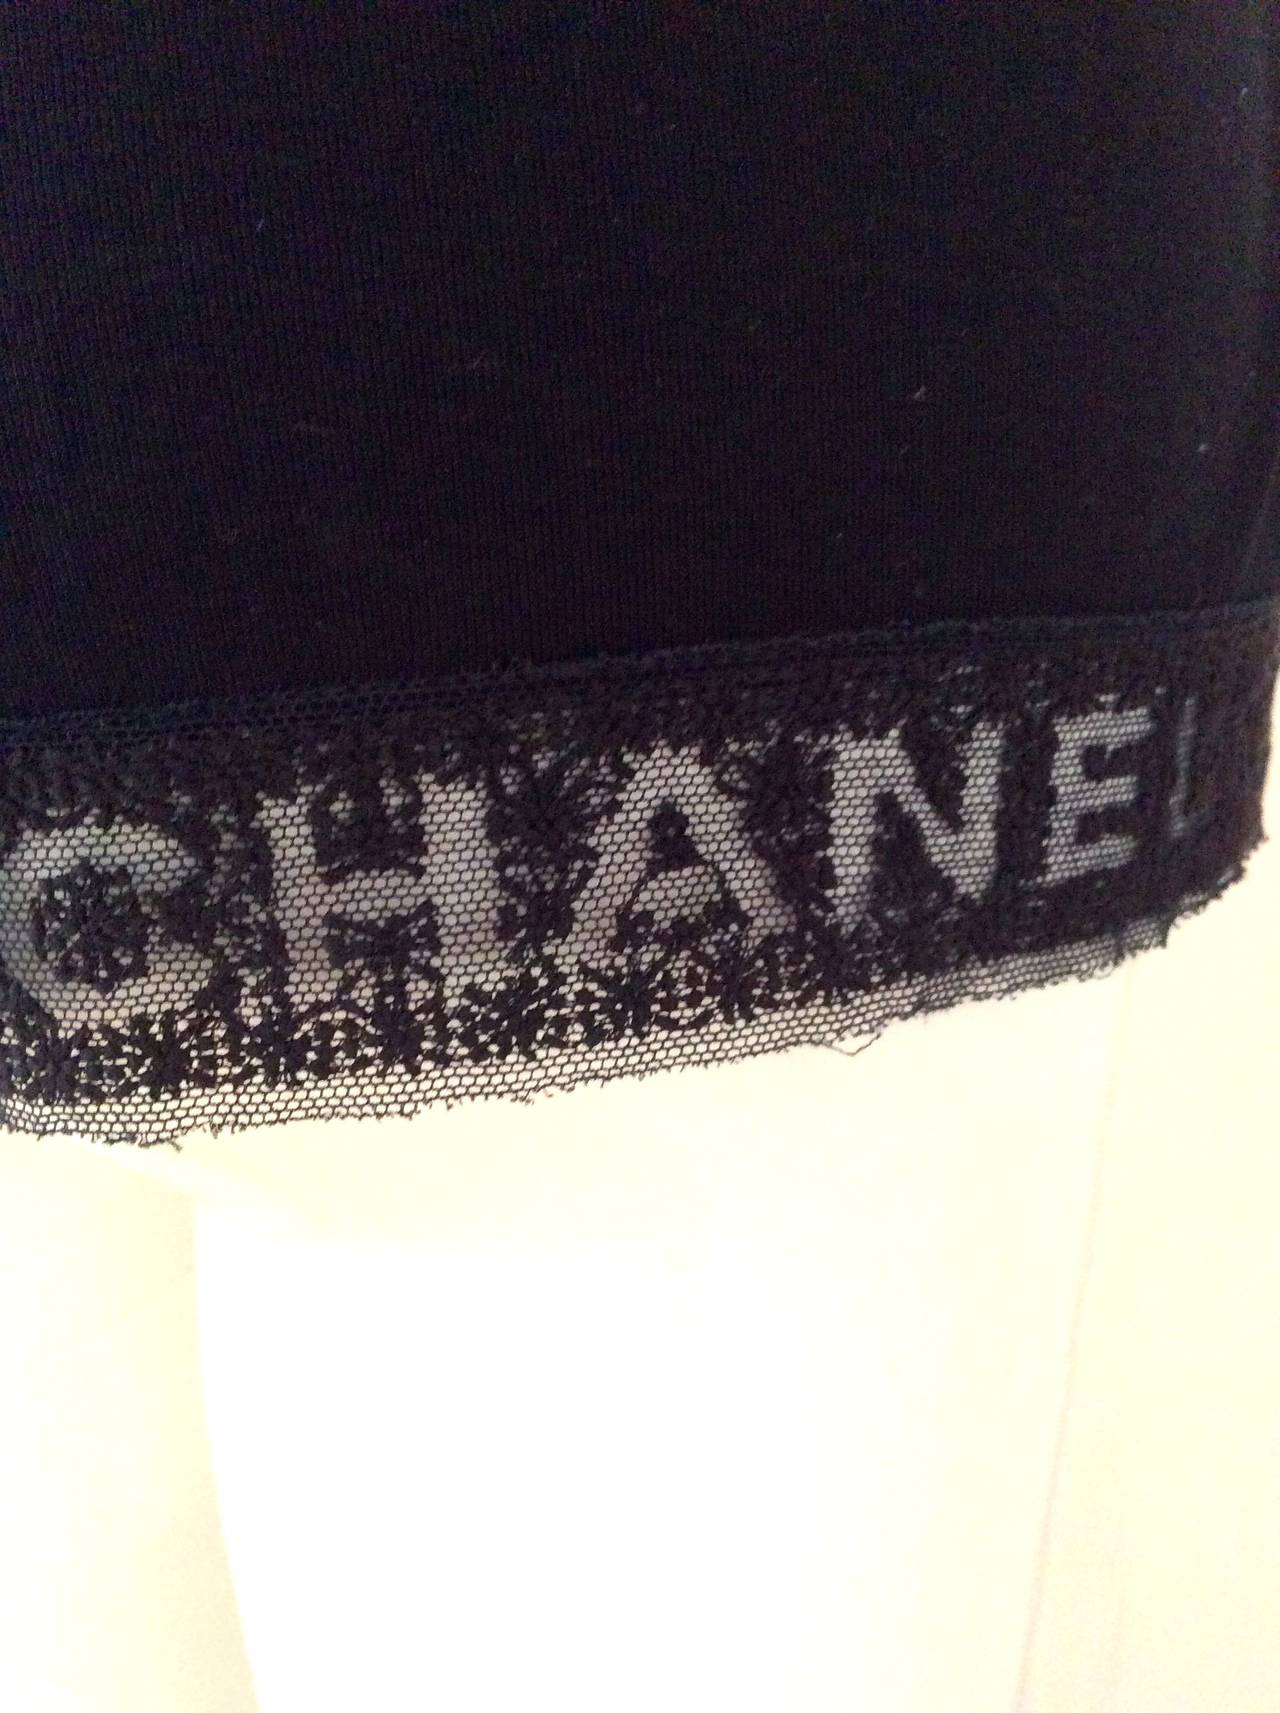 Chanel Black Tee Shirt - Size 36 5